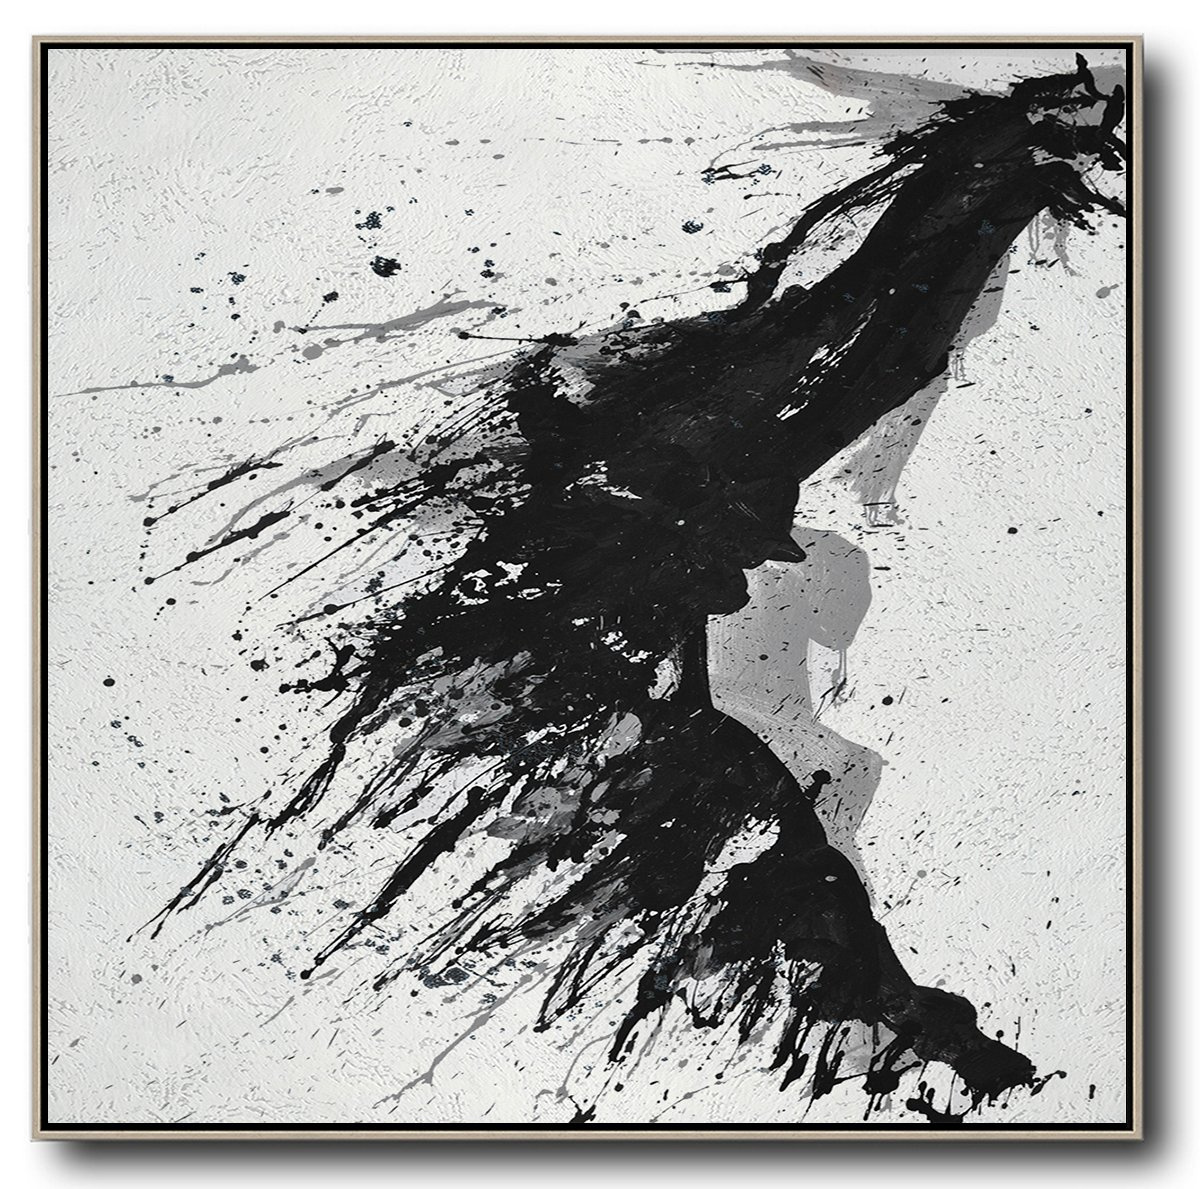 Large Abstract Painting,Minimalist Drip Painting On Canvas, Black, White, Grey - Original Art Acrylic Painting